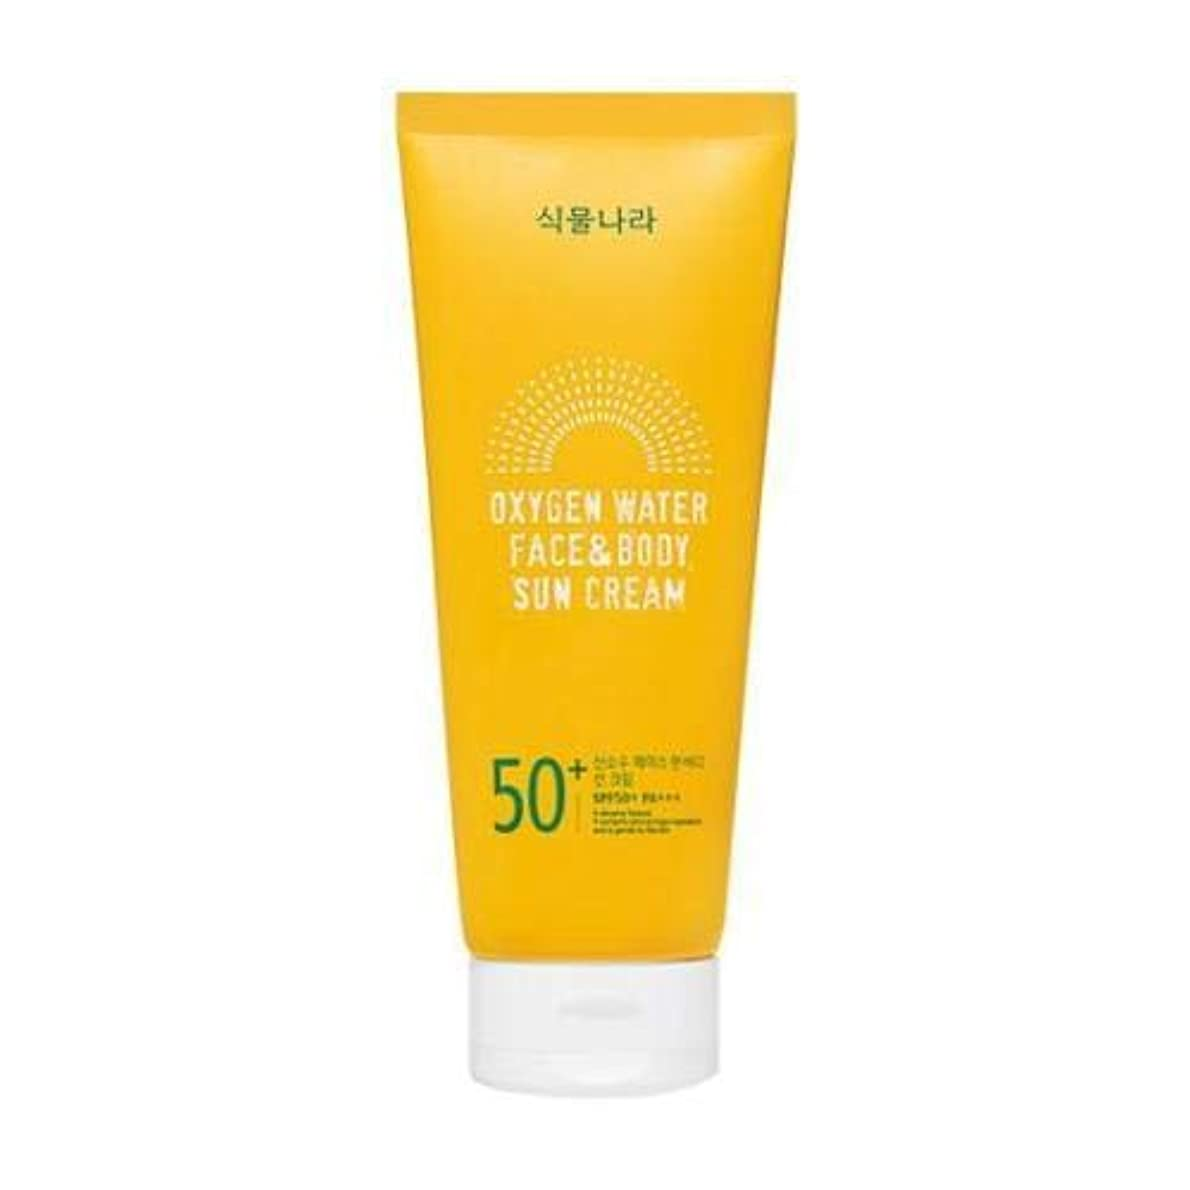 見ました歩行者主権者shingmulnara Oxygen Water Face & Body sun cream サンクリーム (200ml) SPF50+ PA+++